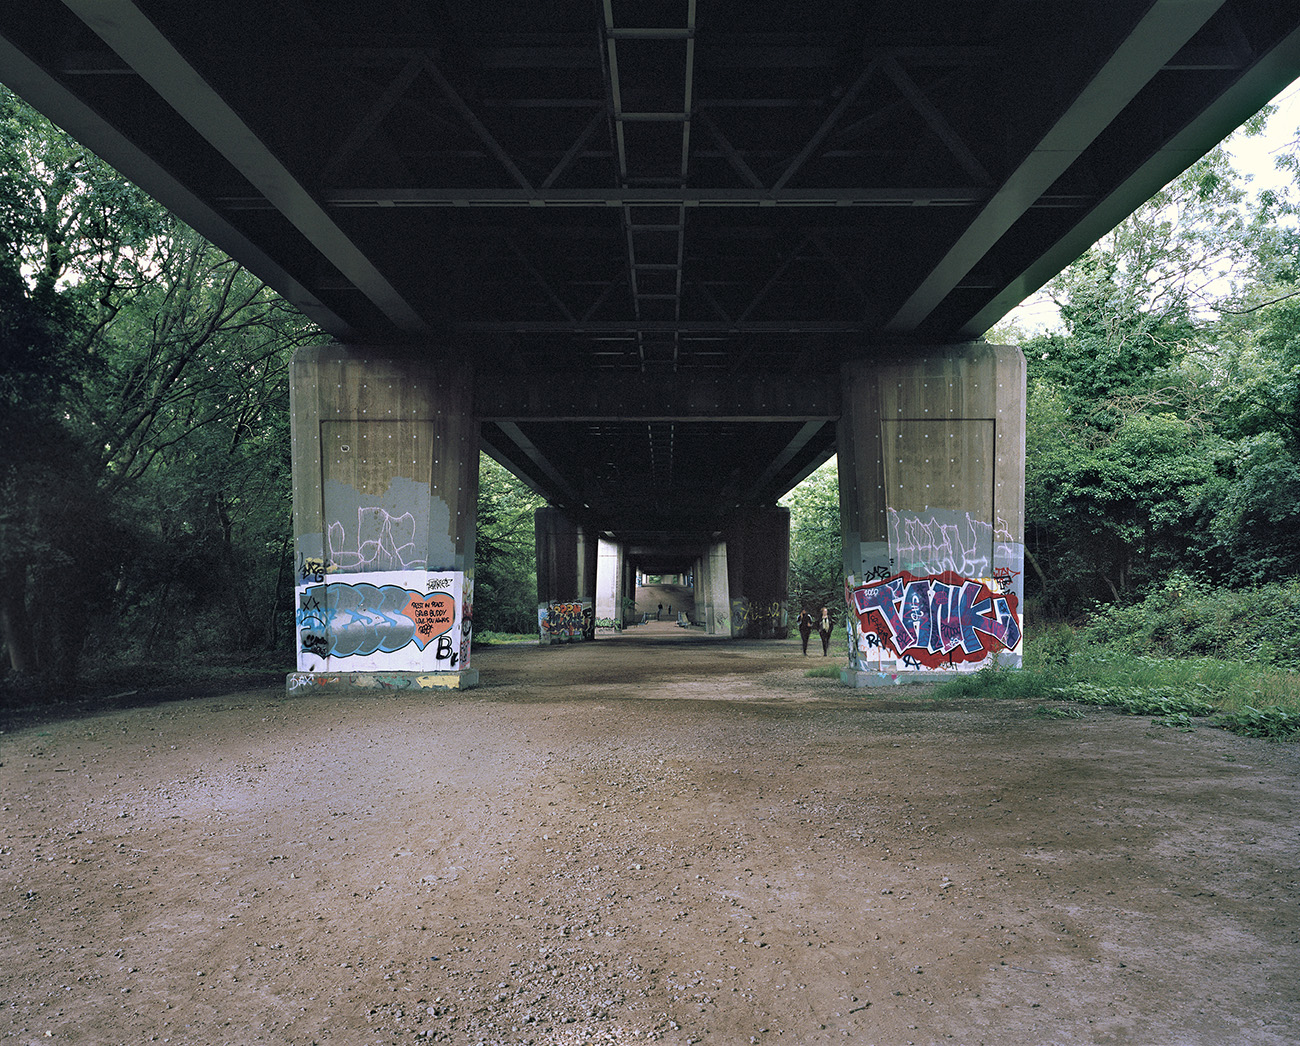 Graffiti and tags cover the concrete pillars of the motorway above